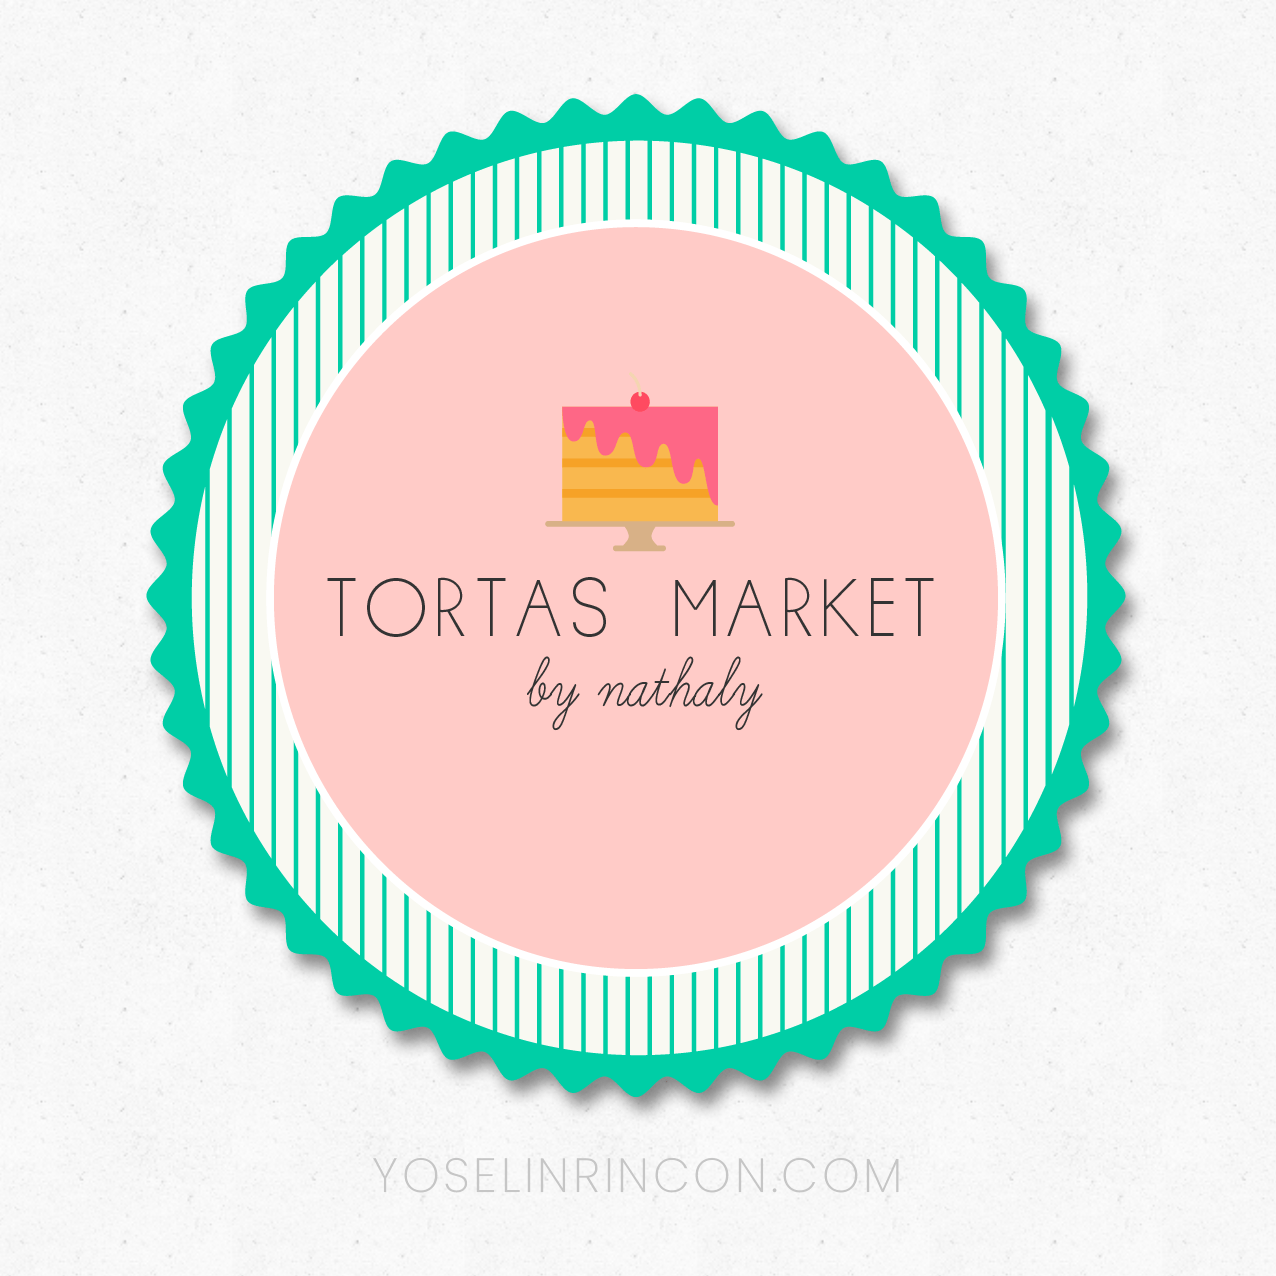 tortas market by nathaly